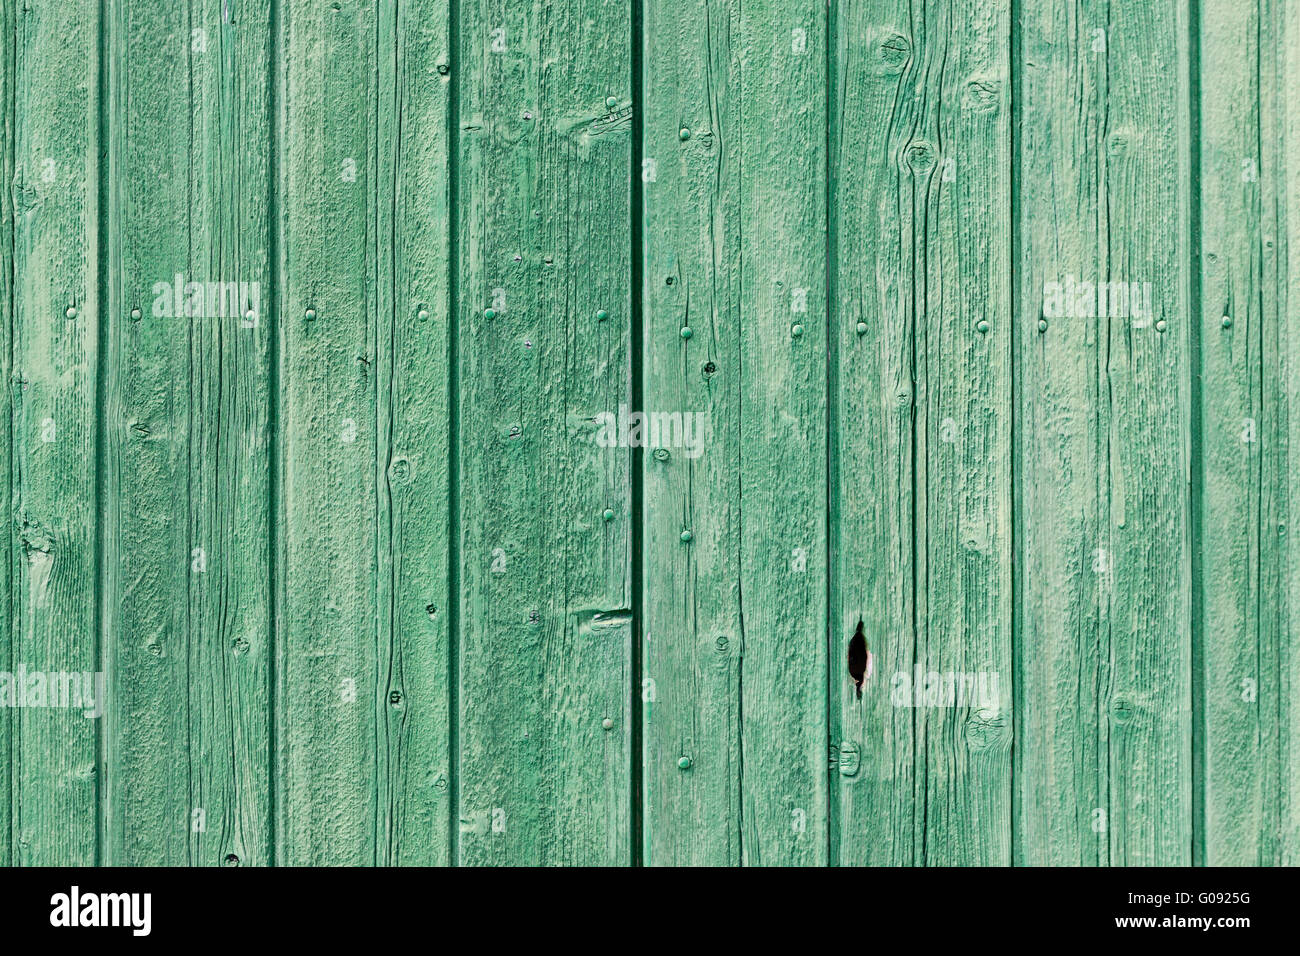 Old green painted weathered wooden planks - Stock Image